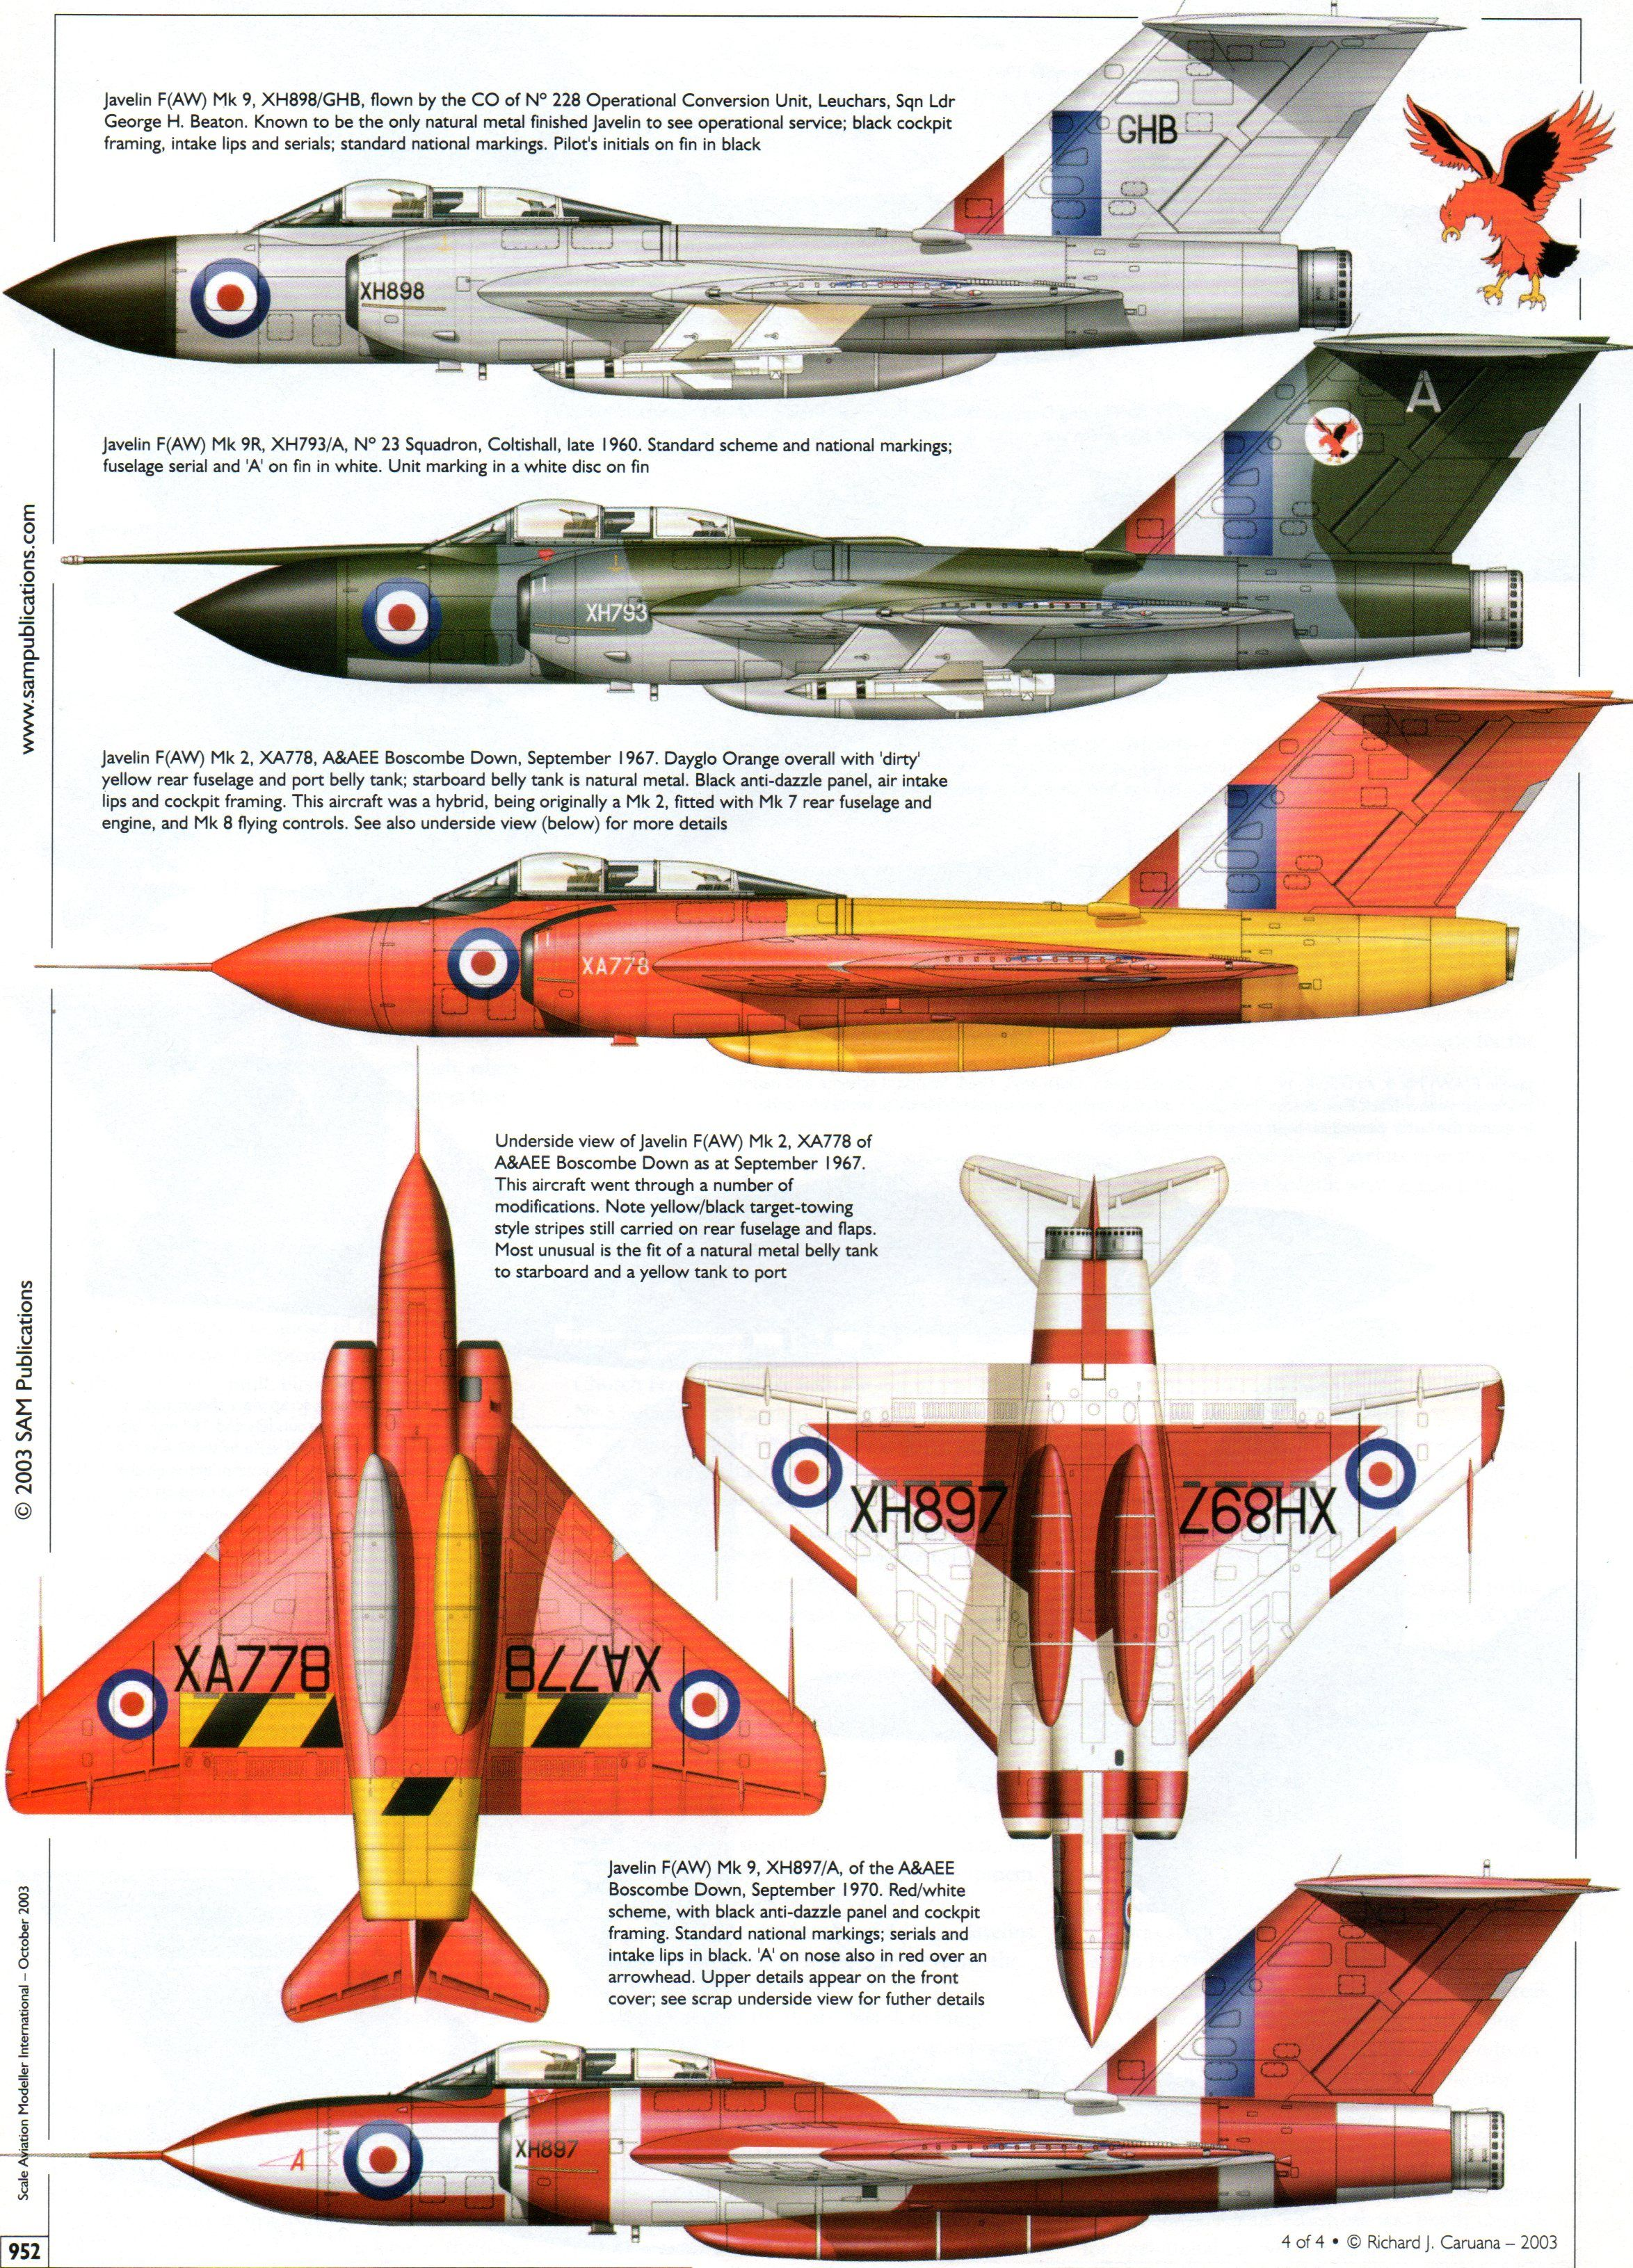 Gloster javelin supersonic aircraft ww2 aircraft military aircraft aircraft painting aircraft design